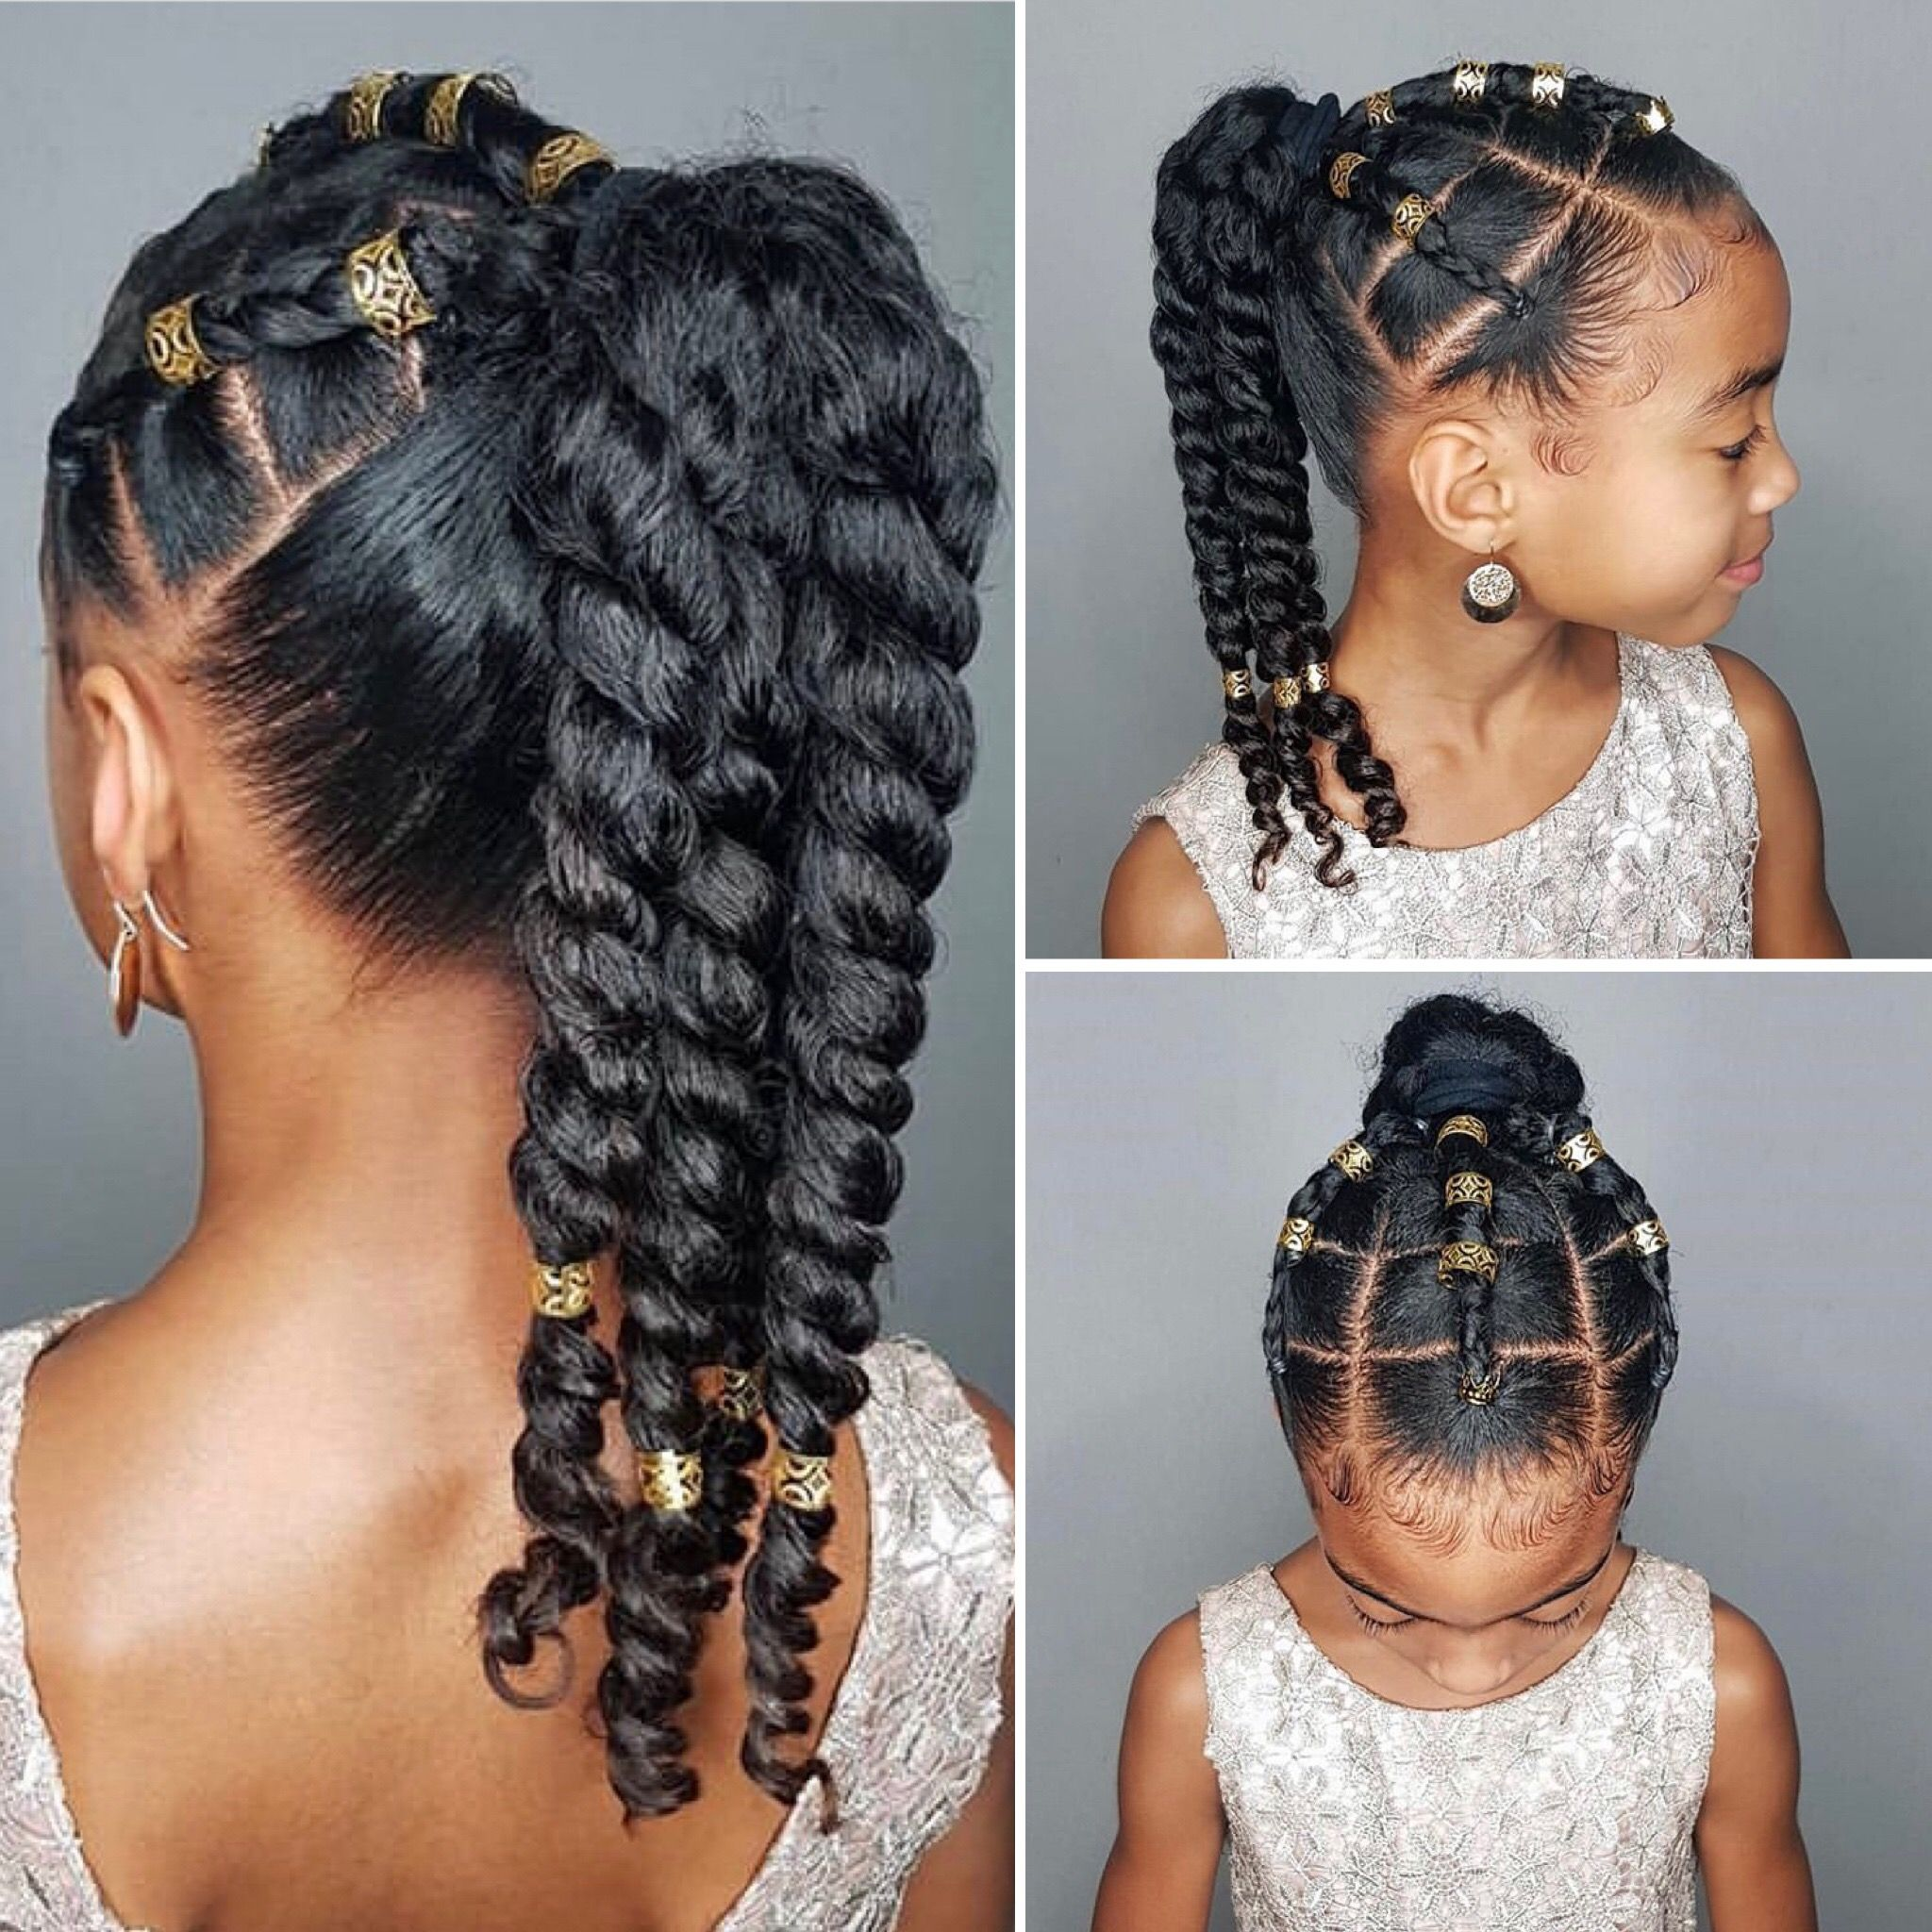 Pin By April Babb On Kids Braids Girls Natural Hairstyles Kids Braided Hairstyles Natural Hairstyles For Kids